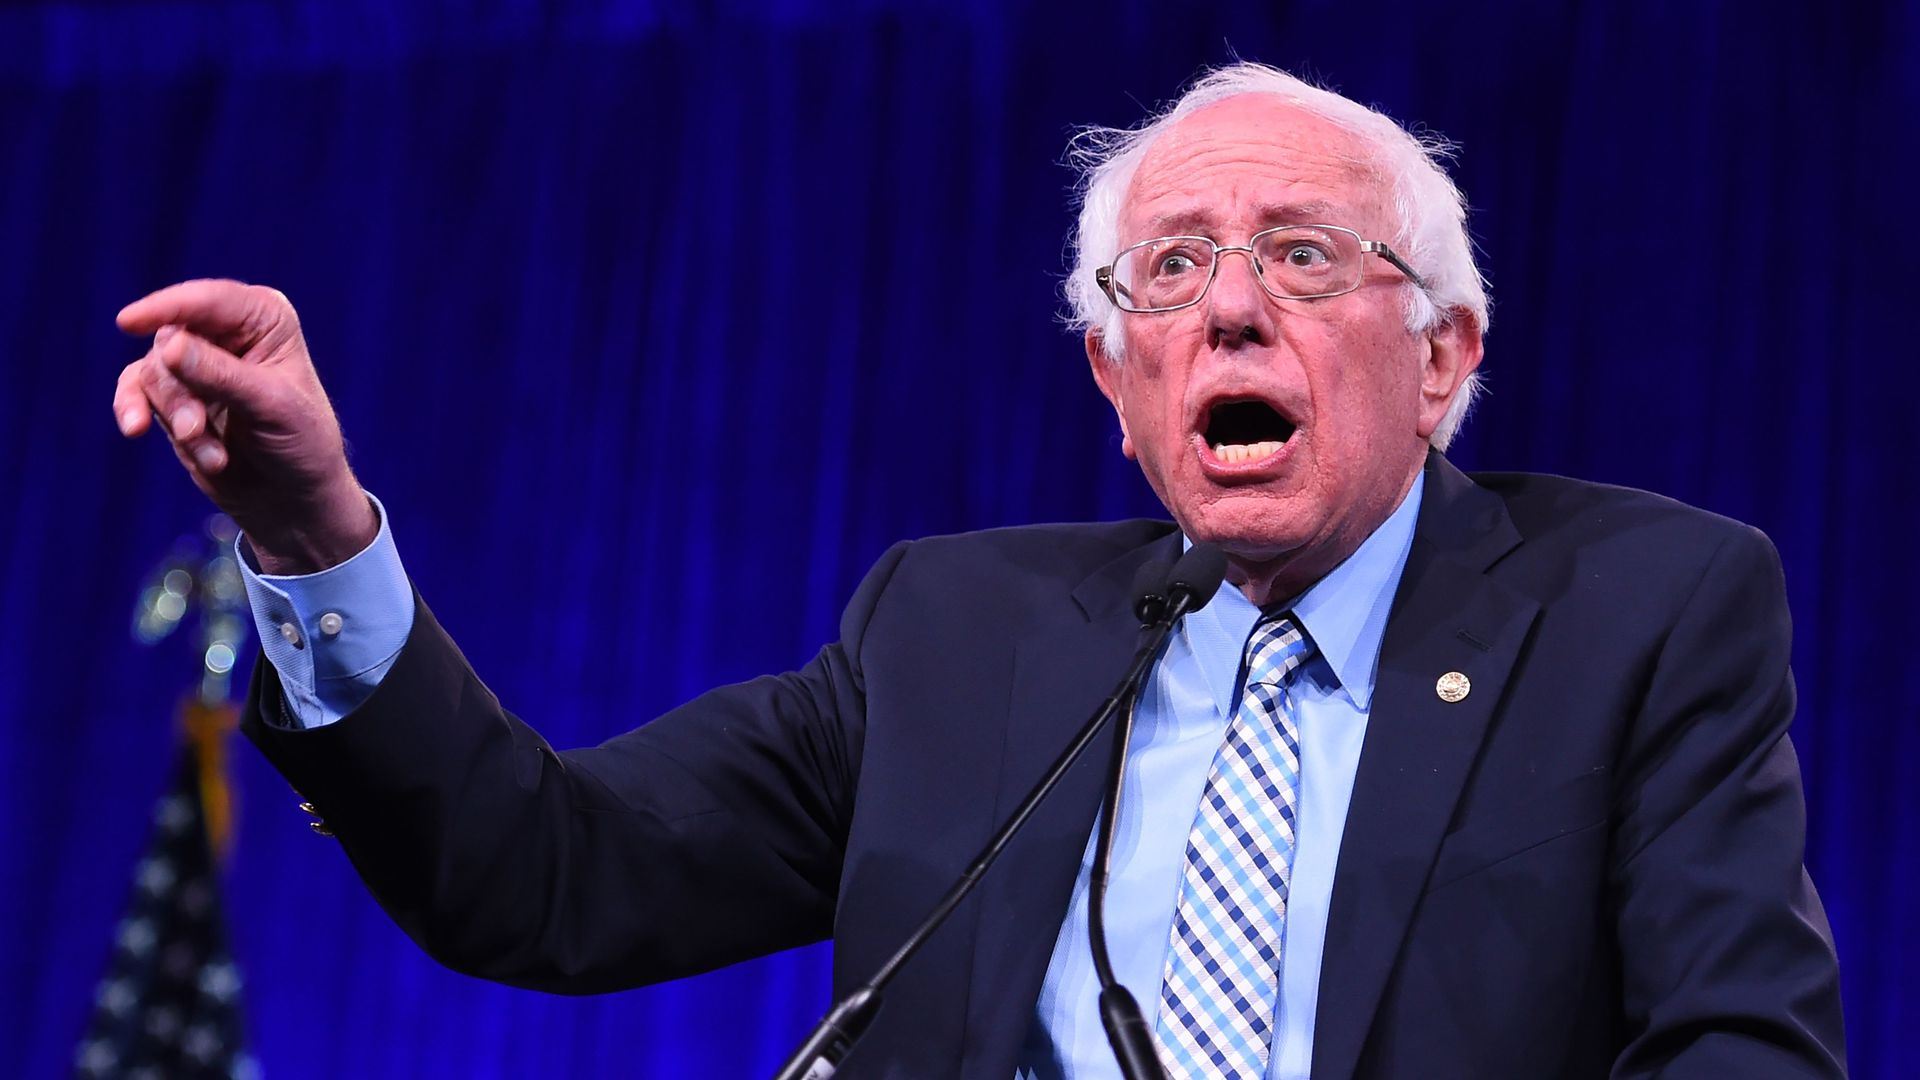 Democratic Presidential hopeful US Senator for Vermont Bernie Sanders speaks on-stage during the Democratic National Committee's summer meeting in San Francisco, California on August 23